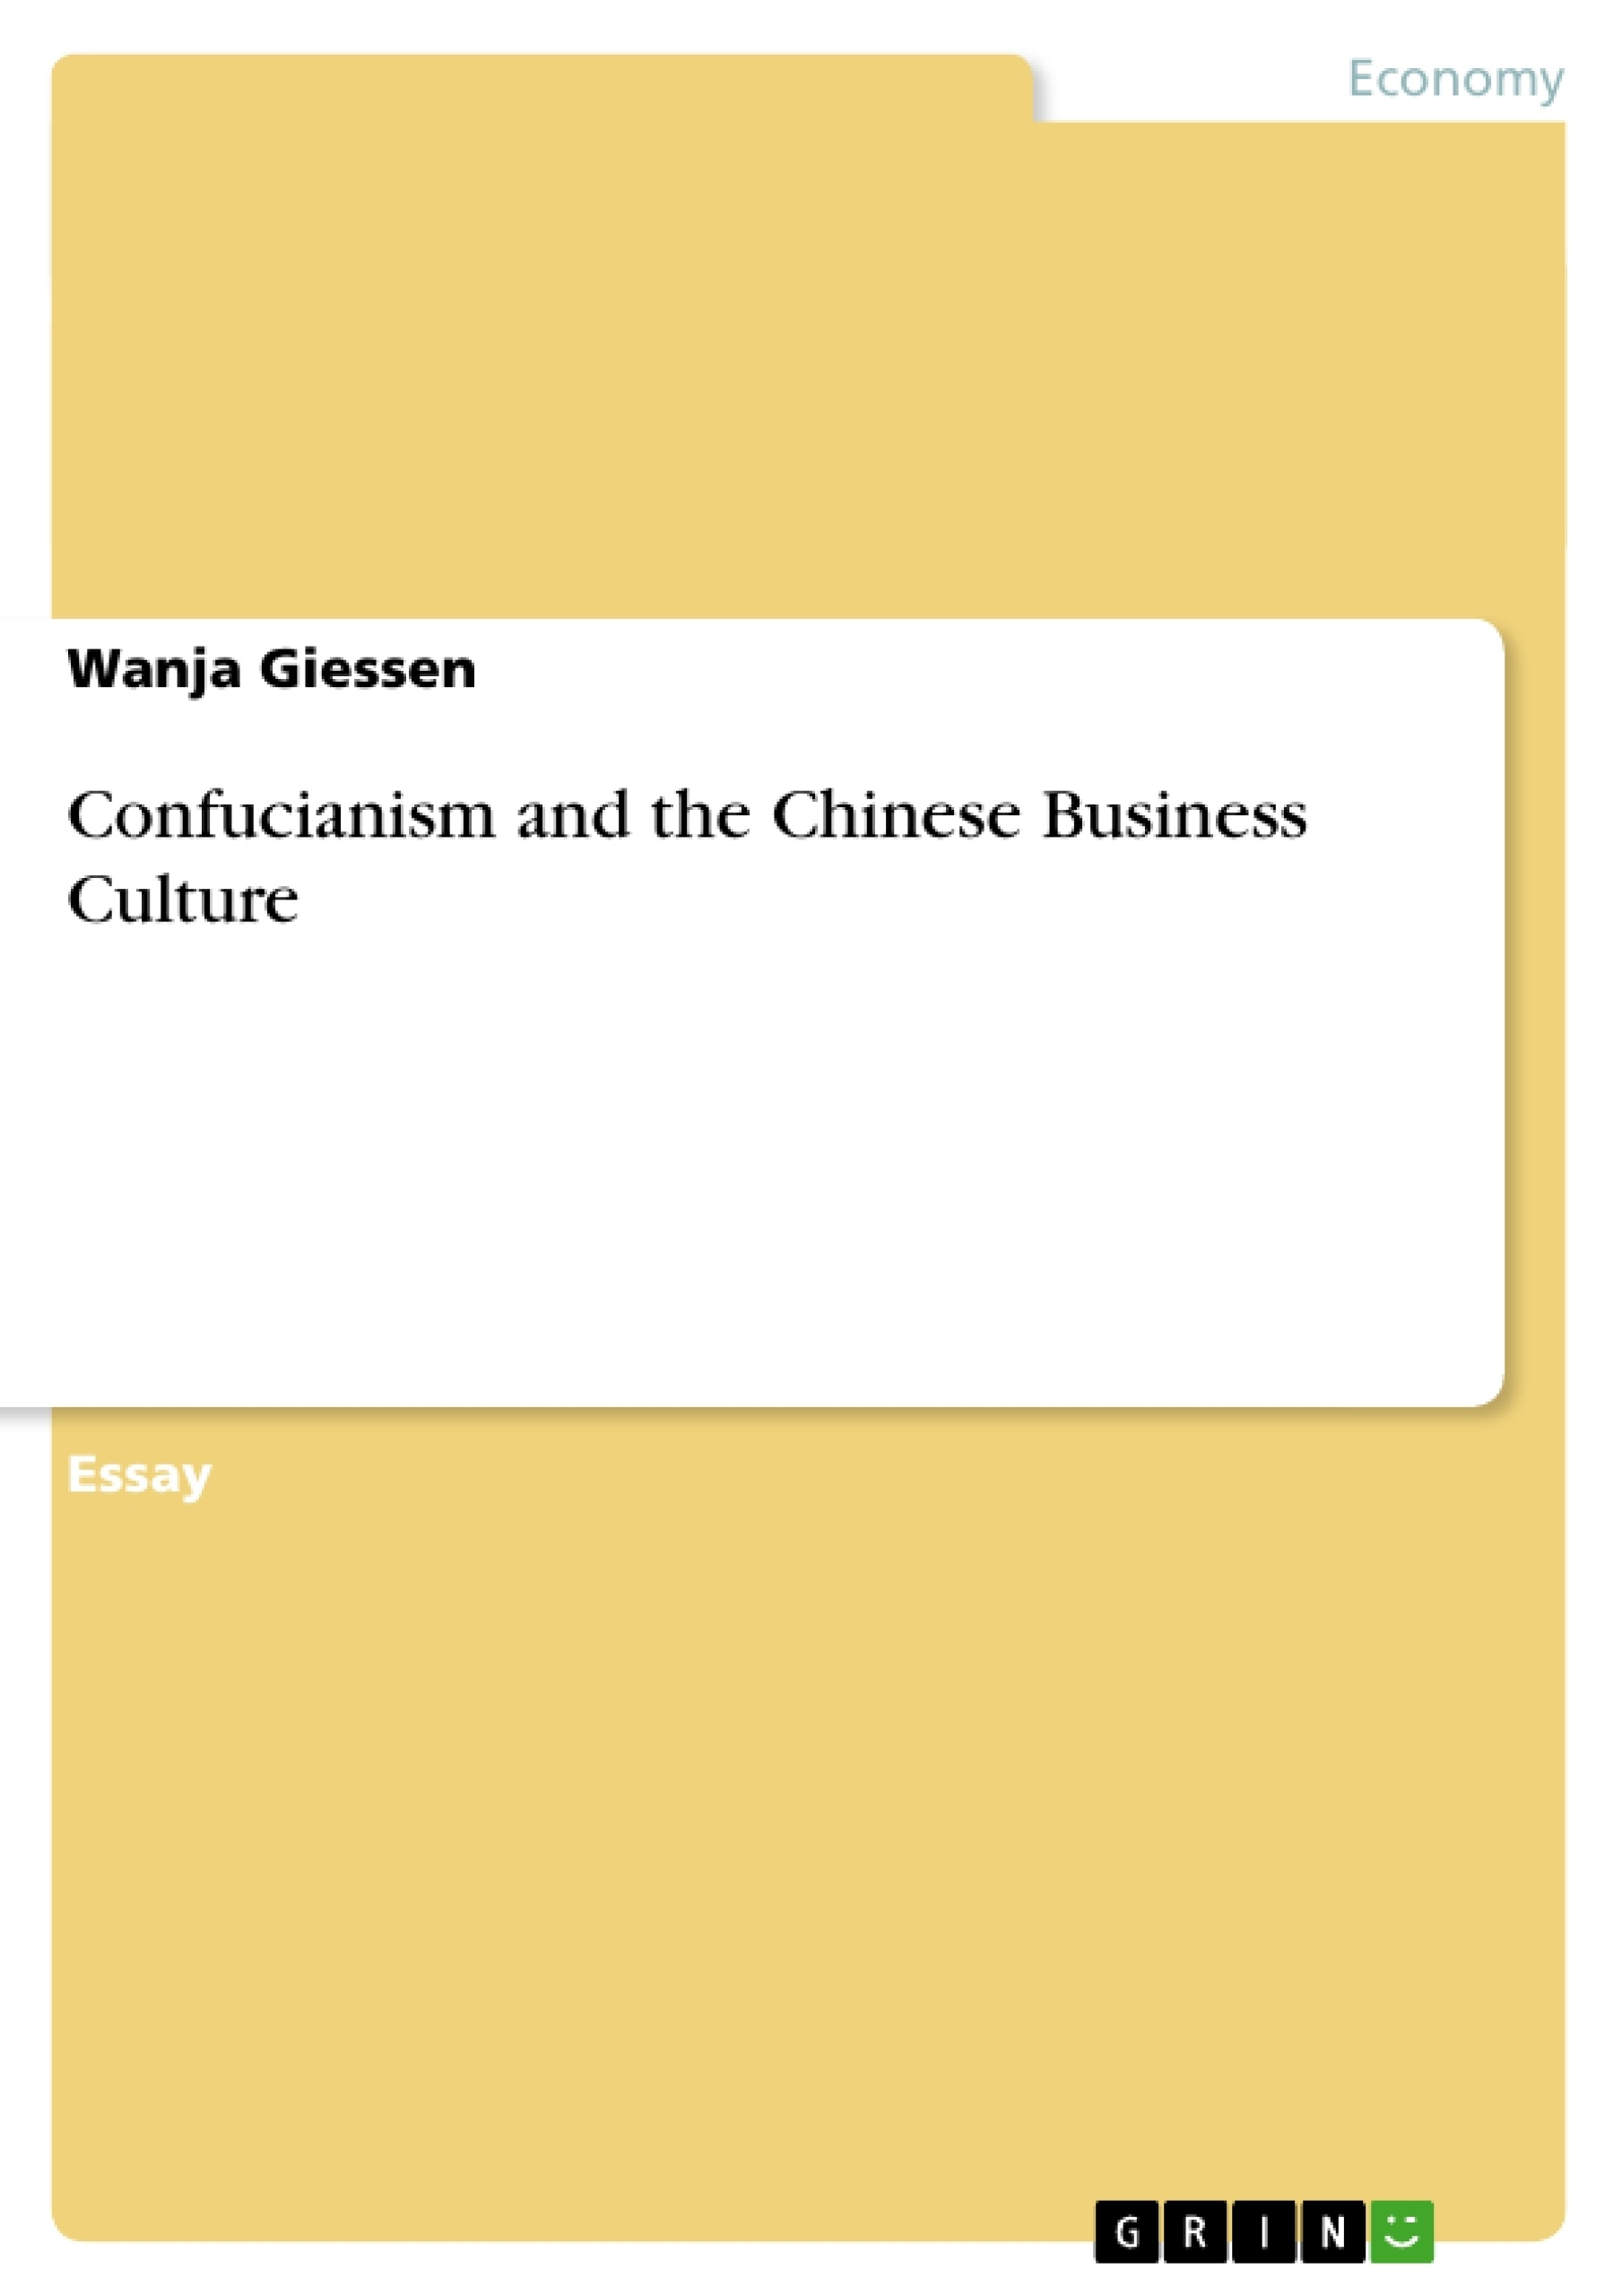 confucianism and the chinese business culture publish your confucianism and the chinese business culture publish your master s thesis bachelor s thesis essay or term paper